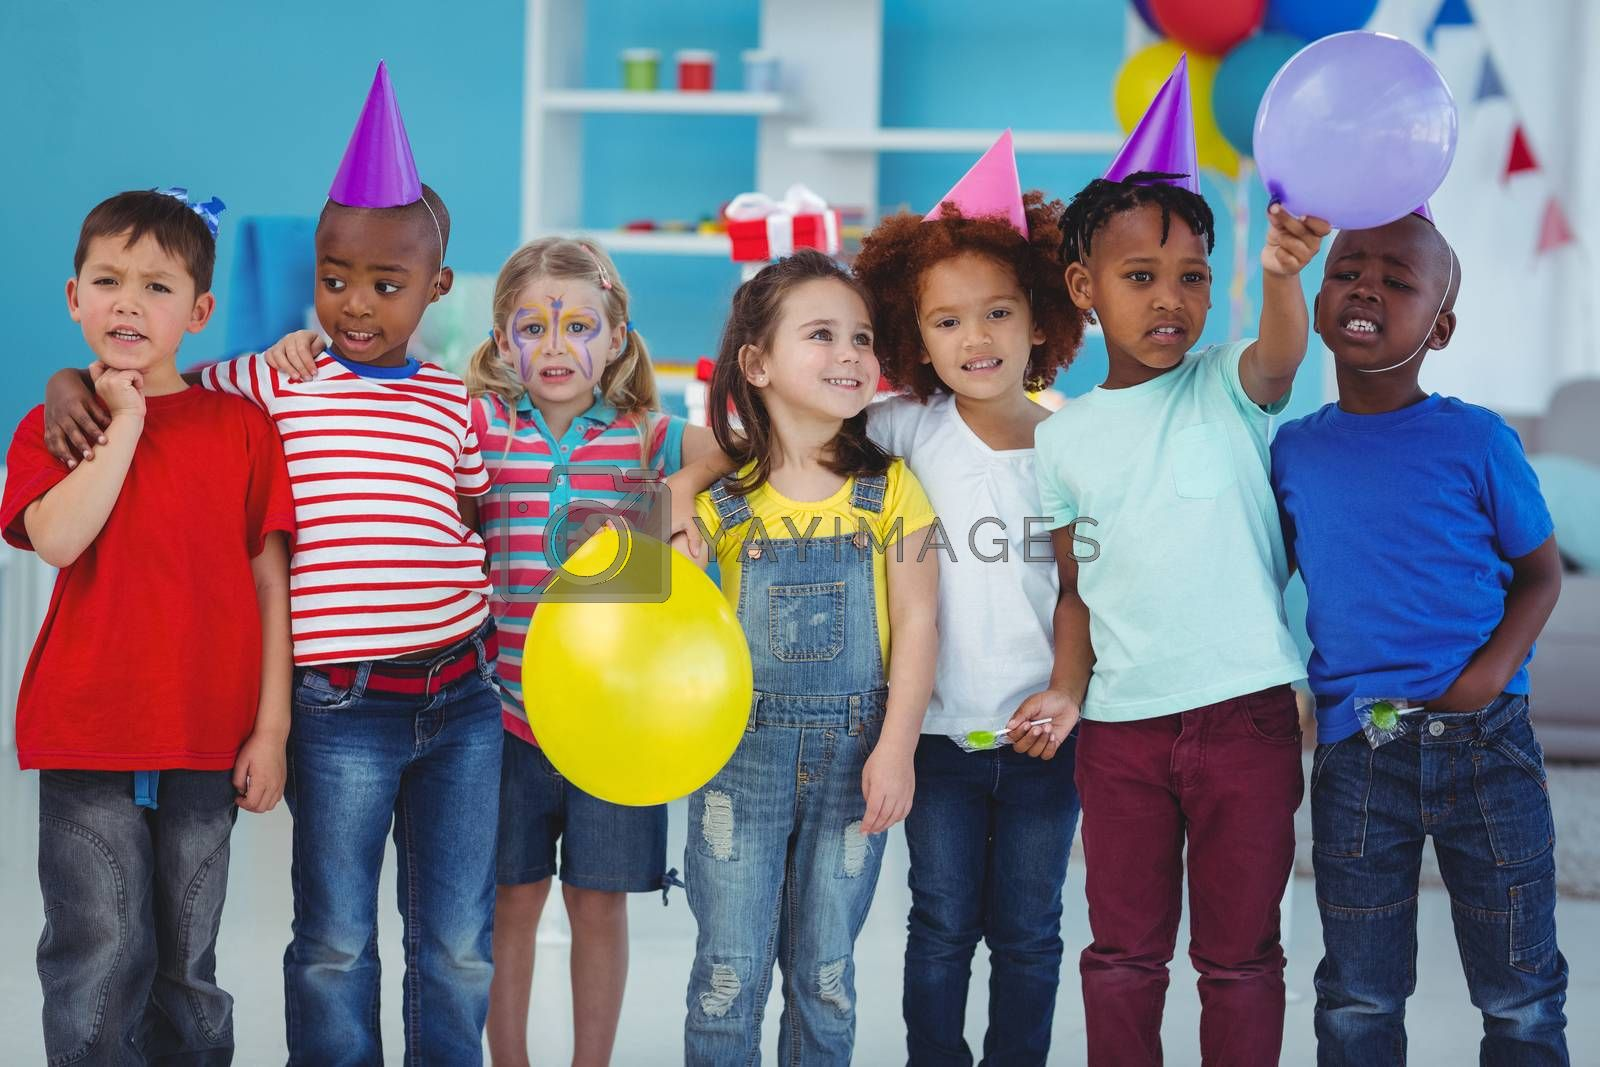 Happy kids enjoying a birthday party standing together